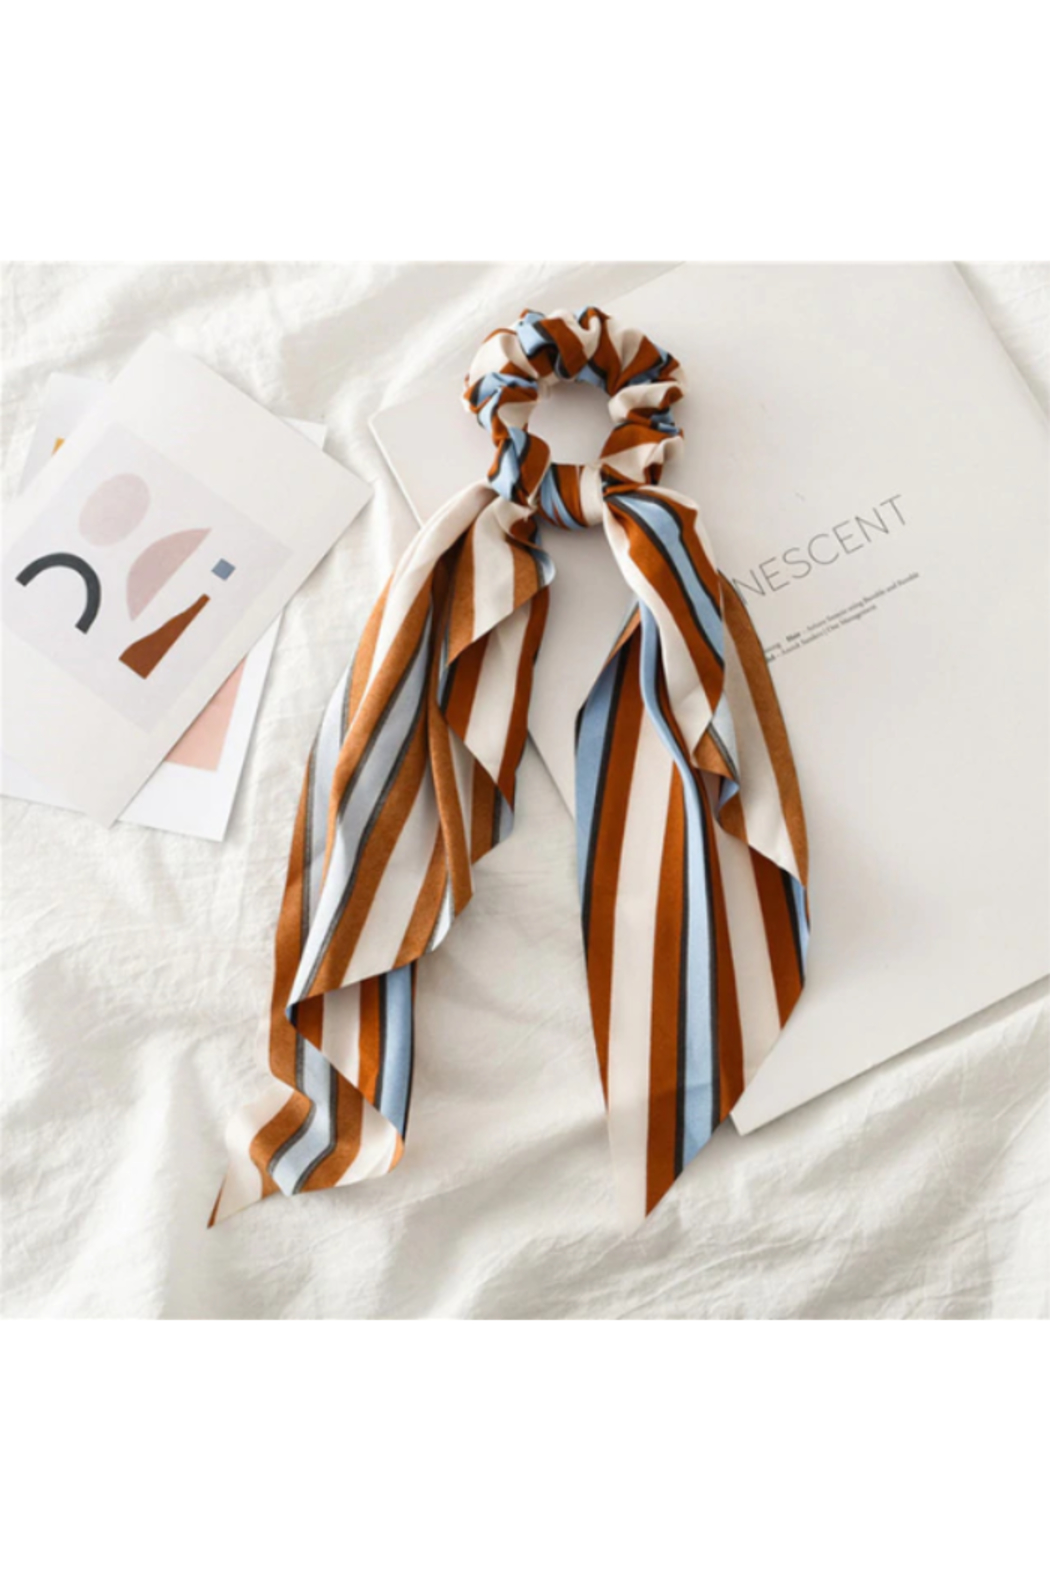 The Birds Nest STRIPED SCRUNCHIE SCARF - Front Cropped Image